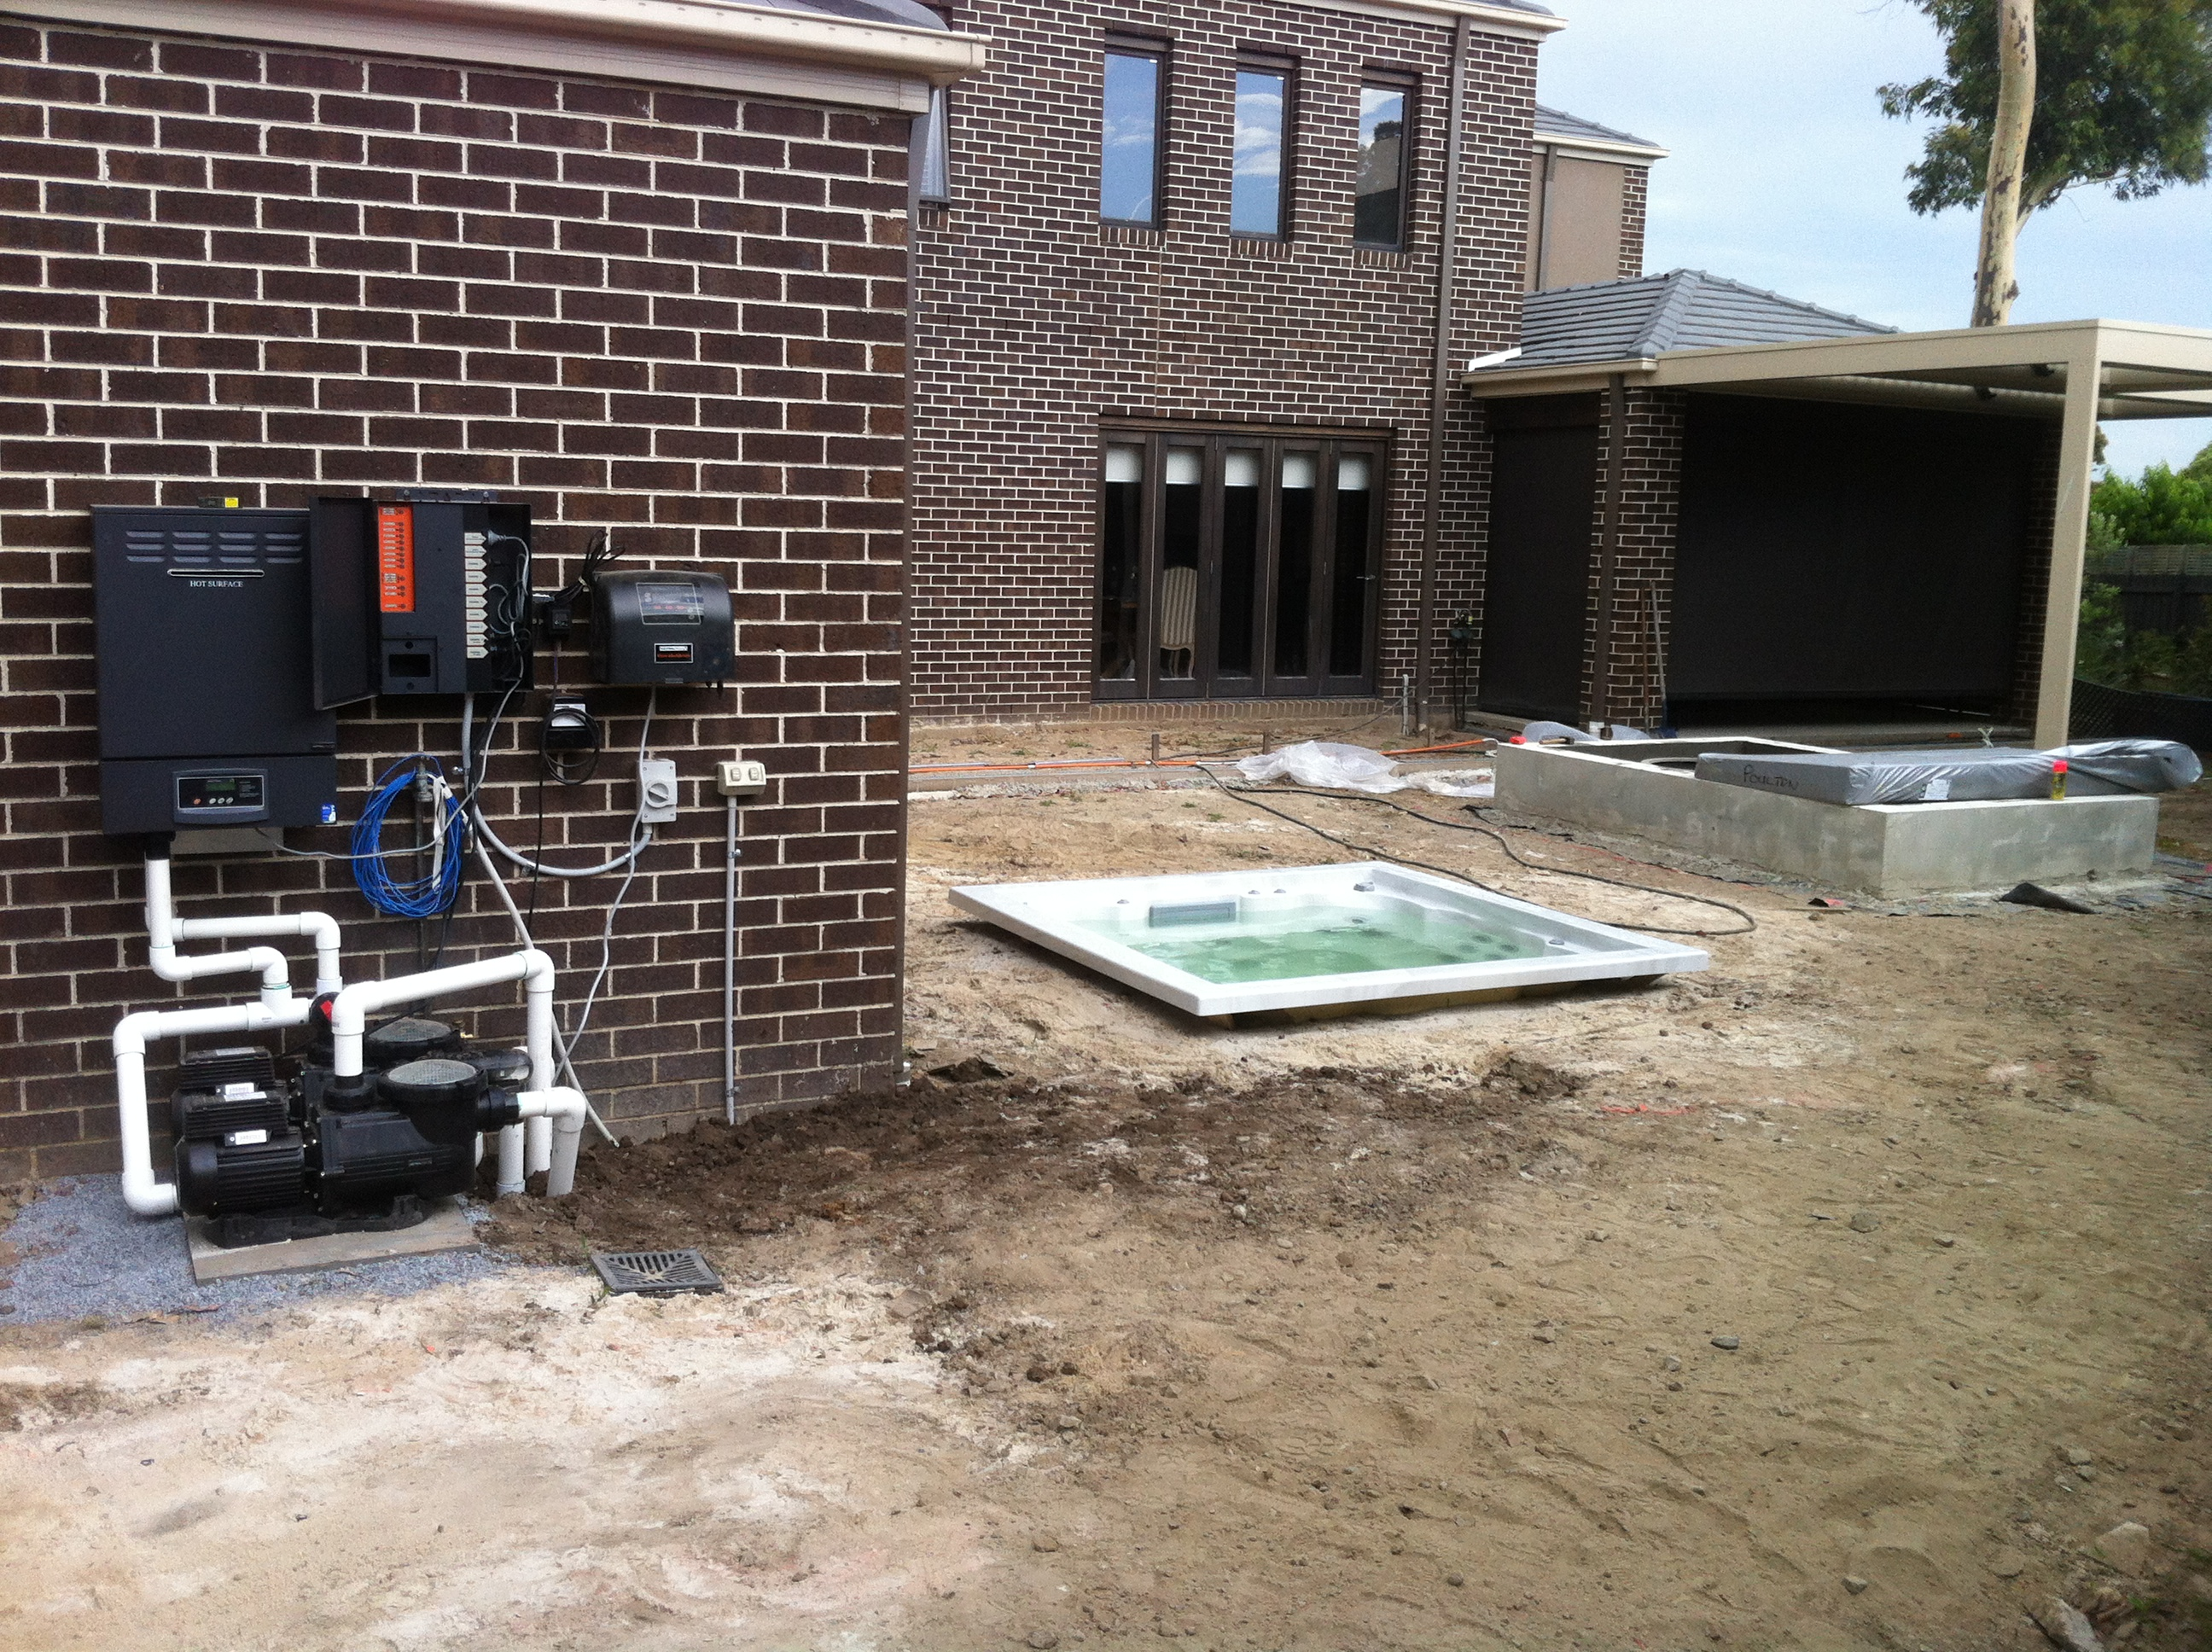 Faqs Run Electrical Wires Underground To Reach Sheds Lights Patios And Smooth Edge Shanepoulton Inground Installation With Equipment Remote